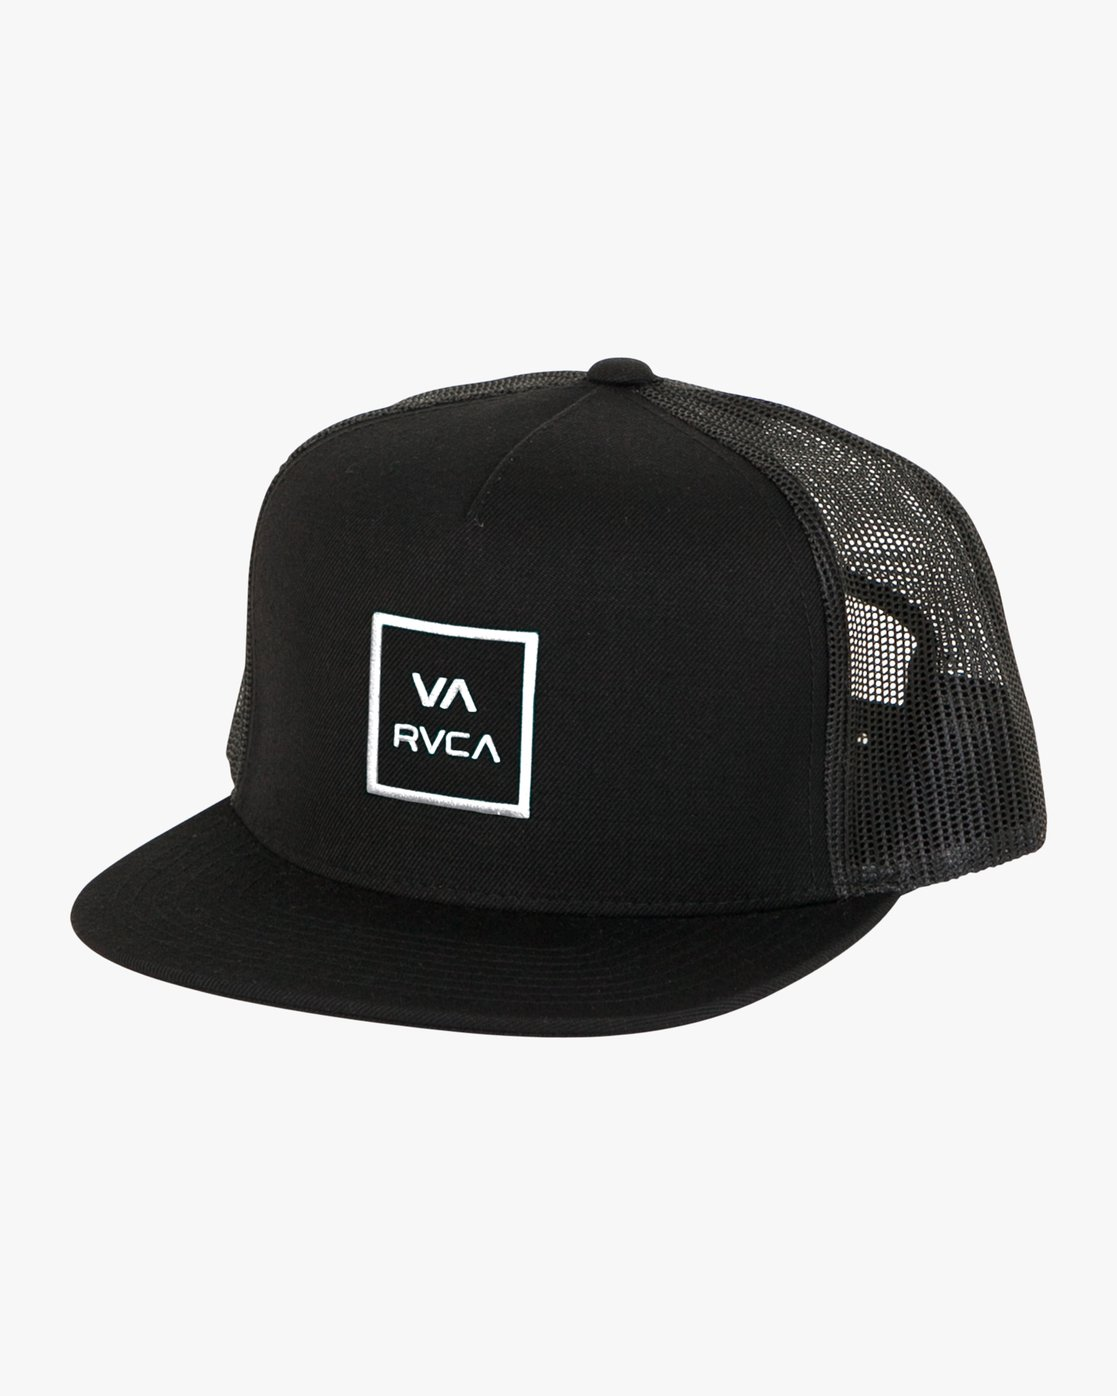 f46ba3d387249 0 VA All The Way Trucker Hat III Black MAAHWVWY RVCA